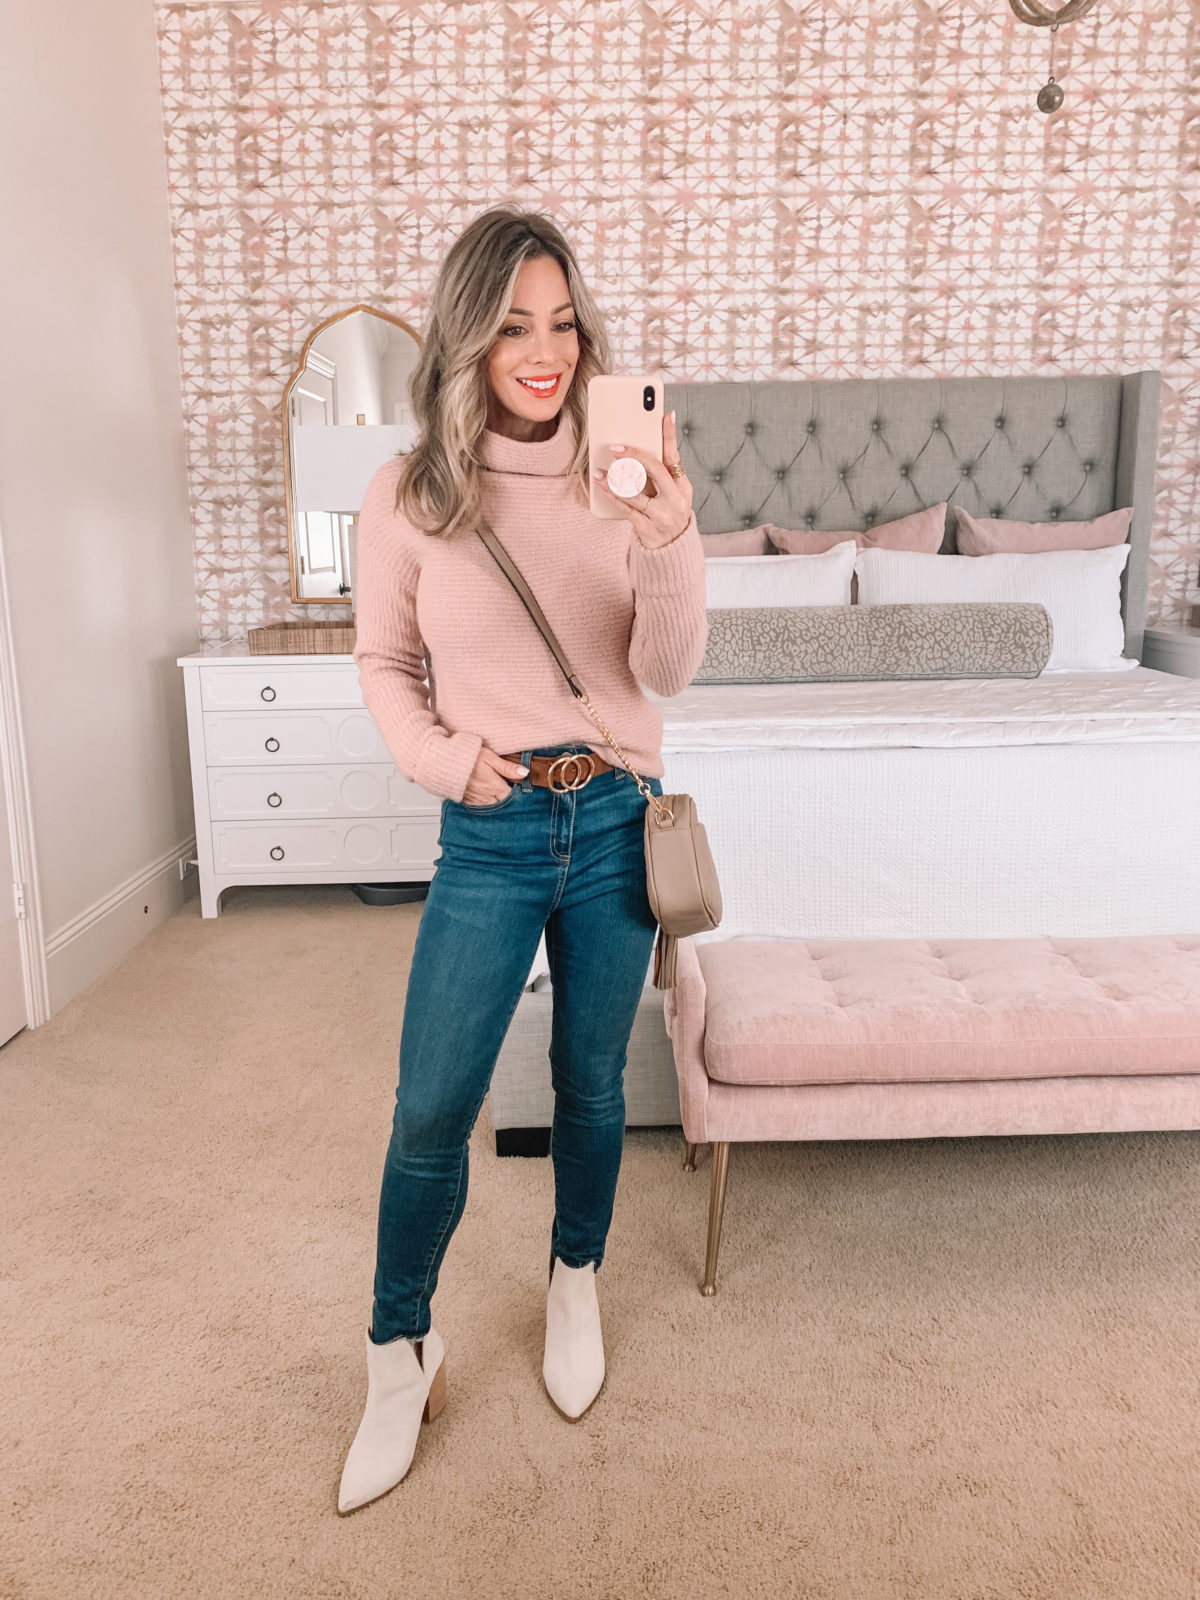 Amazon Fashion Faves, Pink sweater, Jeans, Belt, Booties, Crossbody